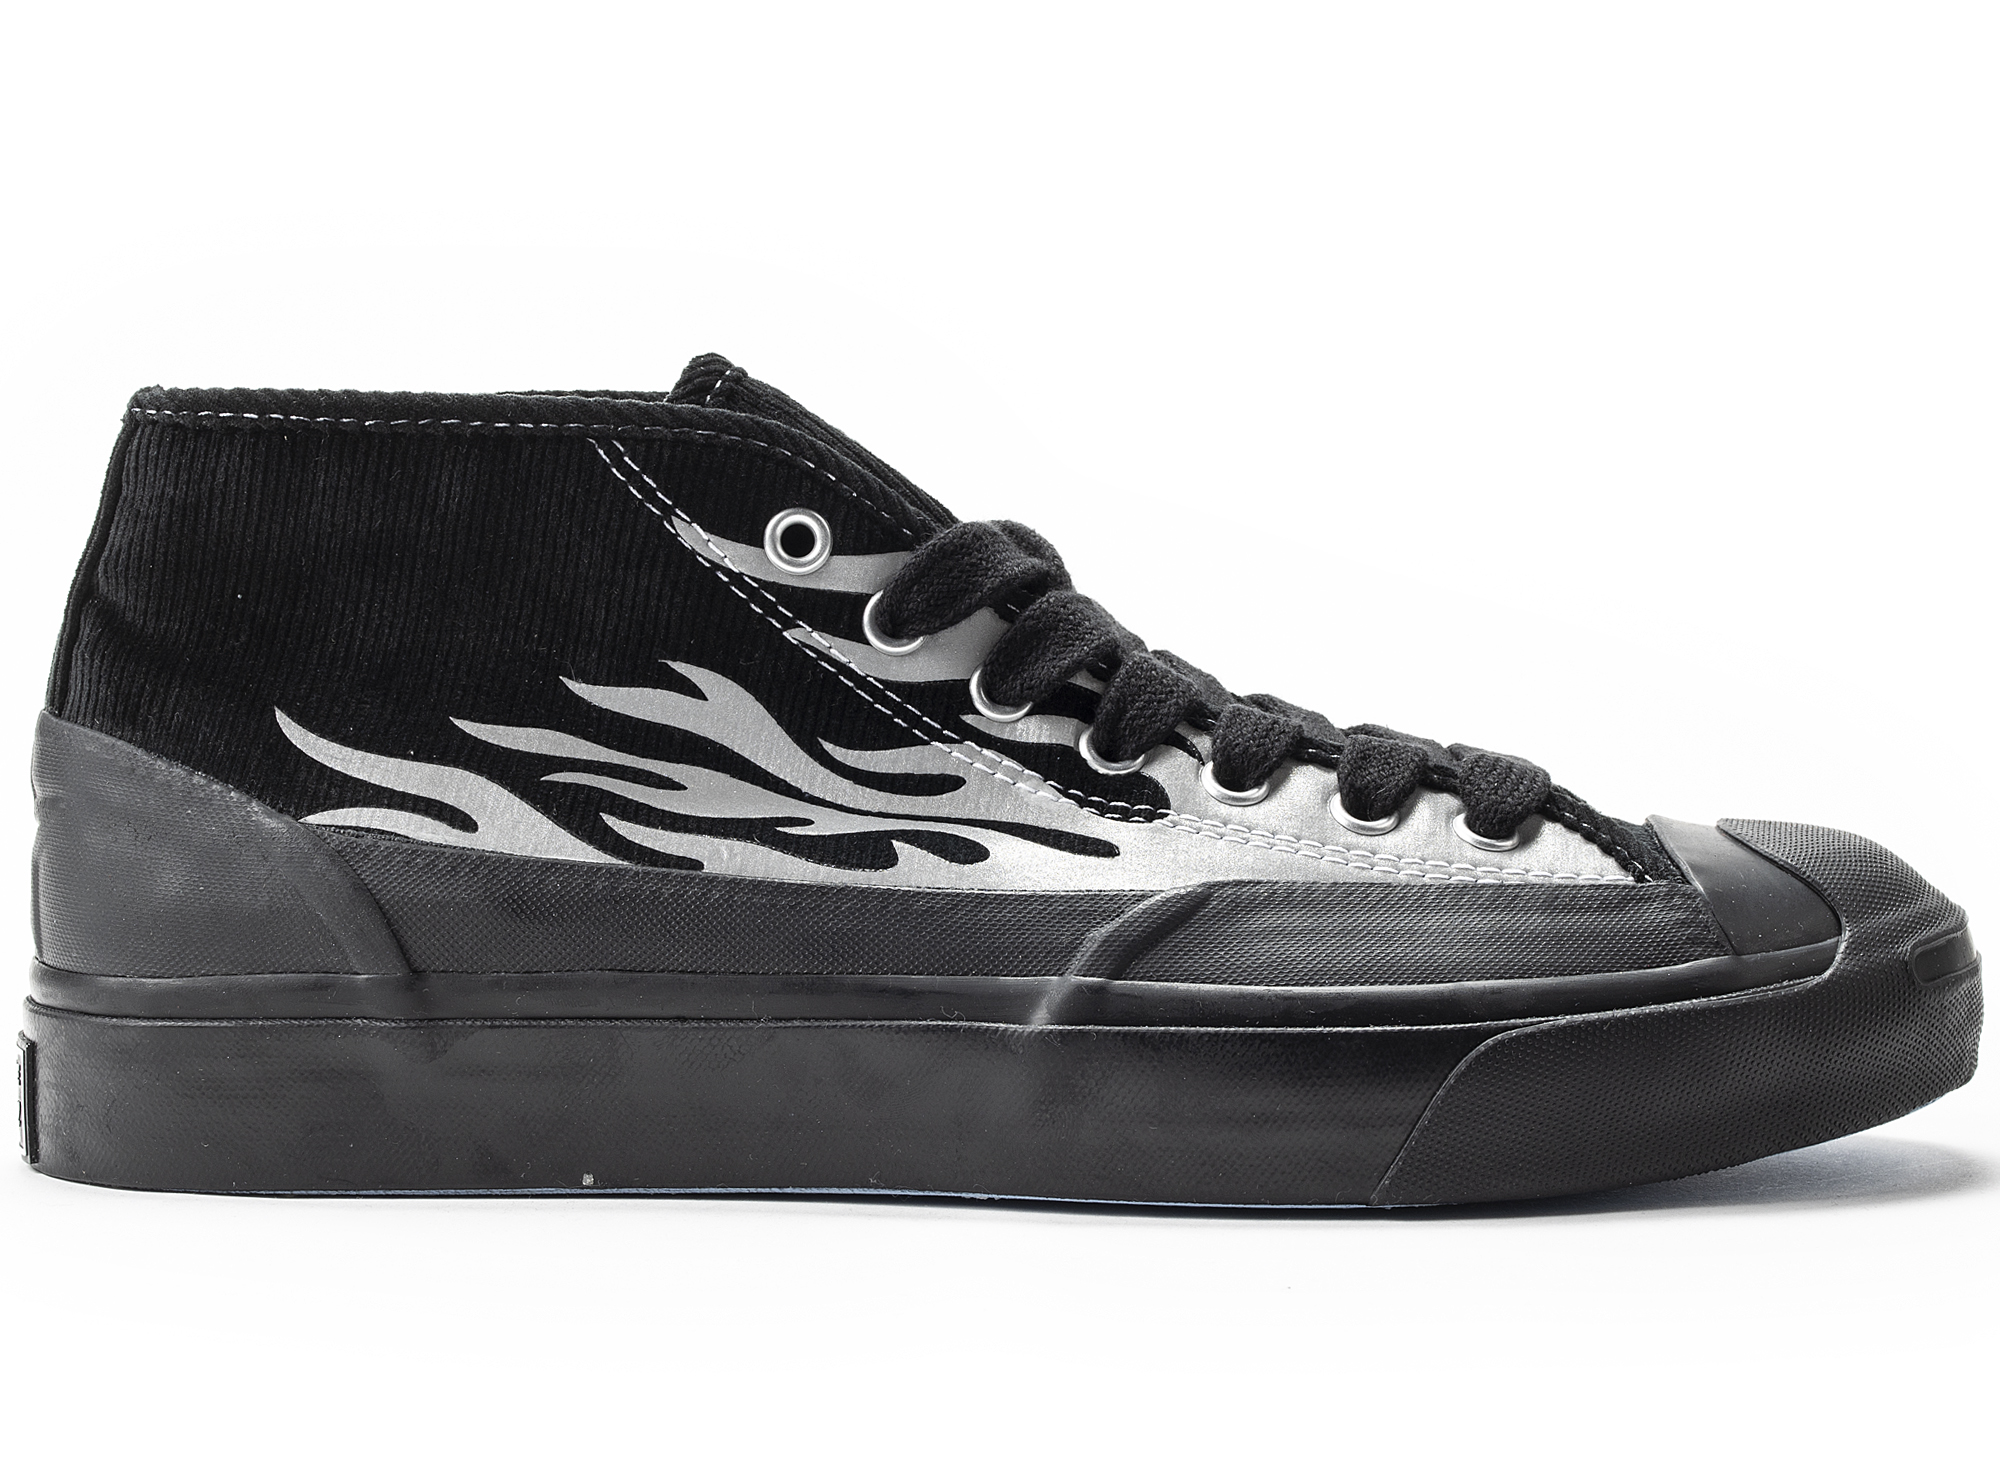 A$AP Nast x Converse Jack Purcell Chukka Mid